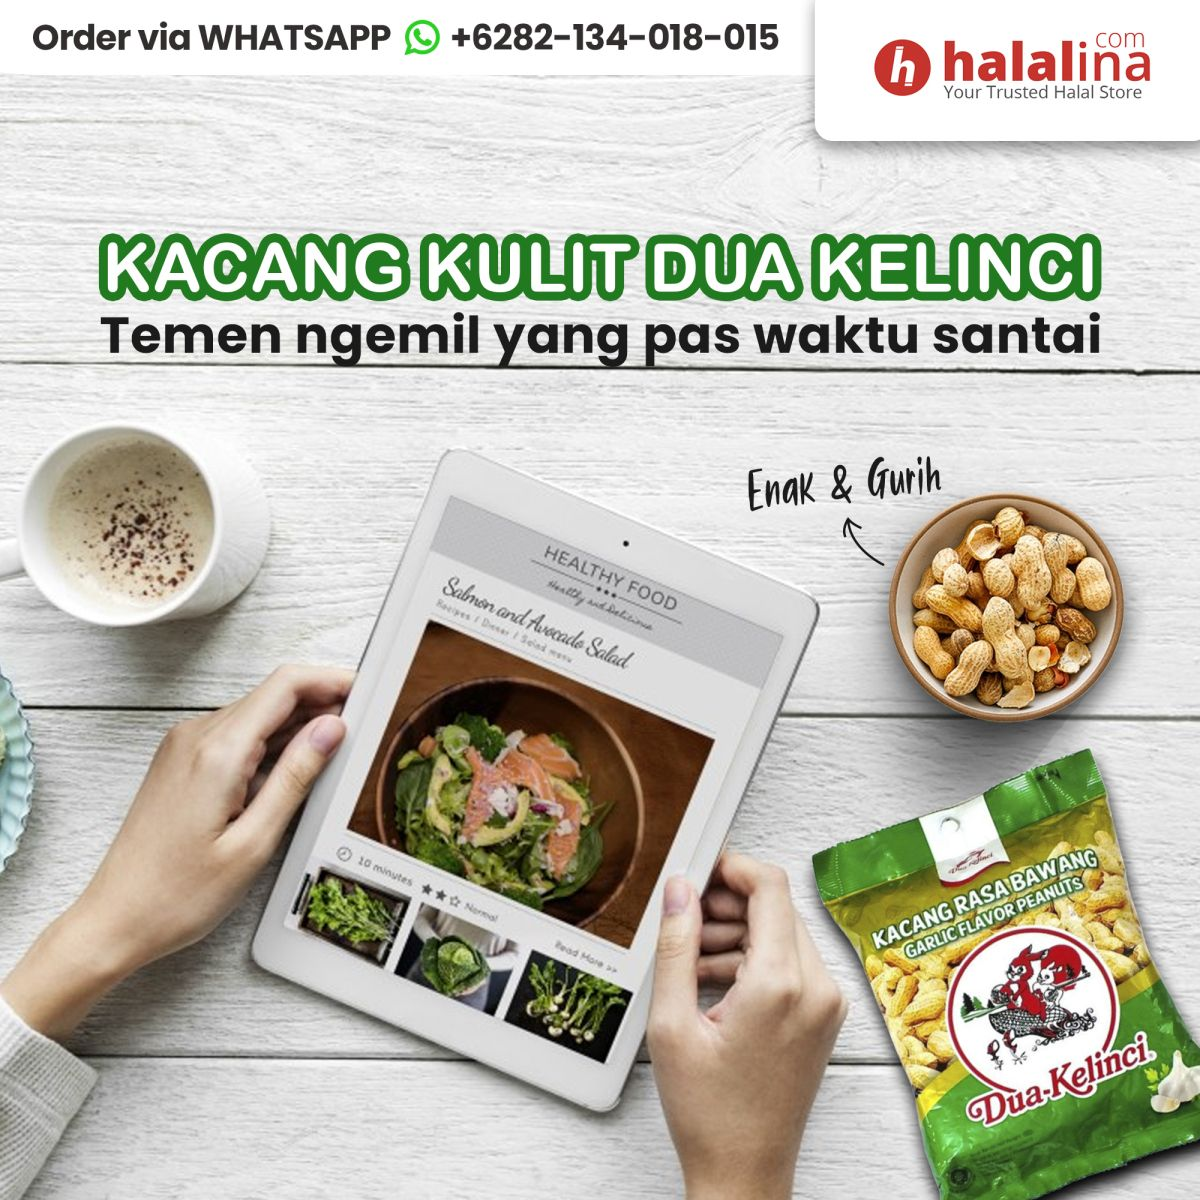 Halalina Phone 62 821 3401 8015 Halal Food Indonesia Japan In 2020 Halal Snacks Halal Recipes Food Shop